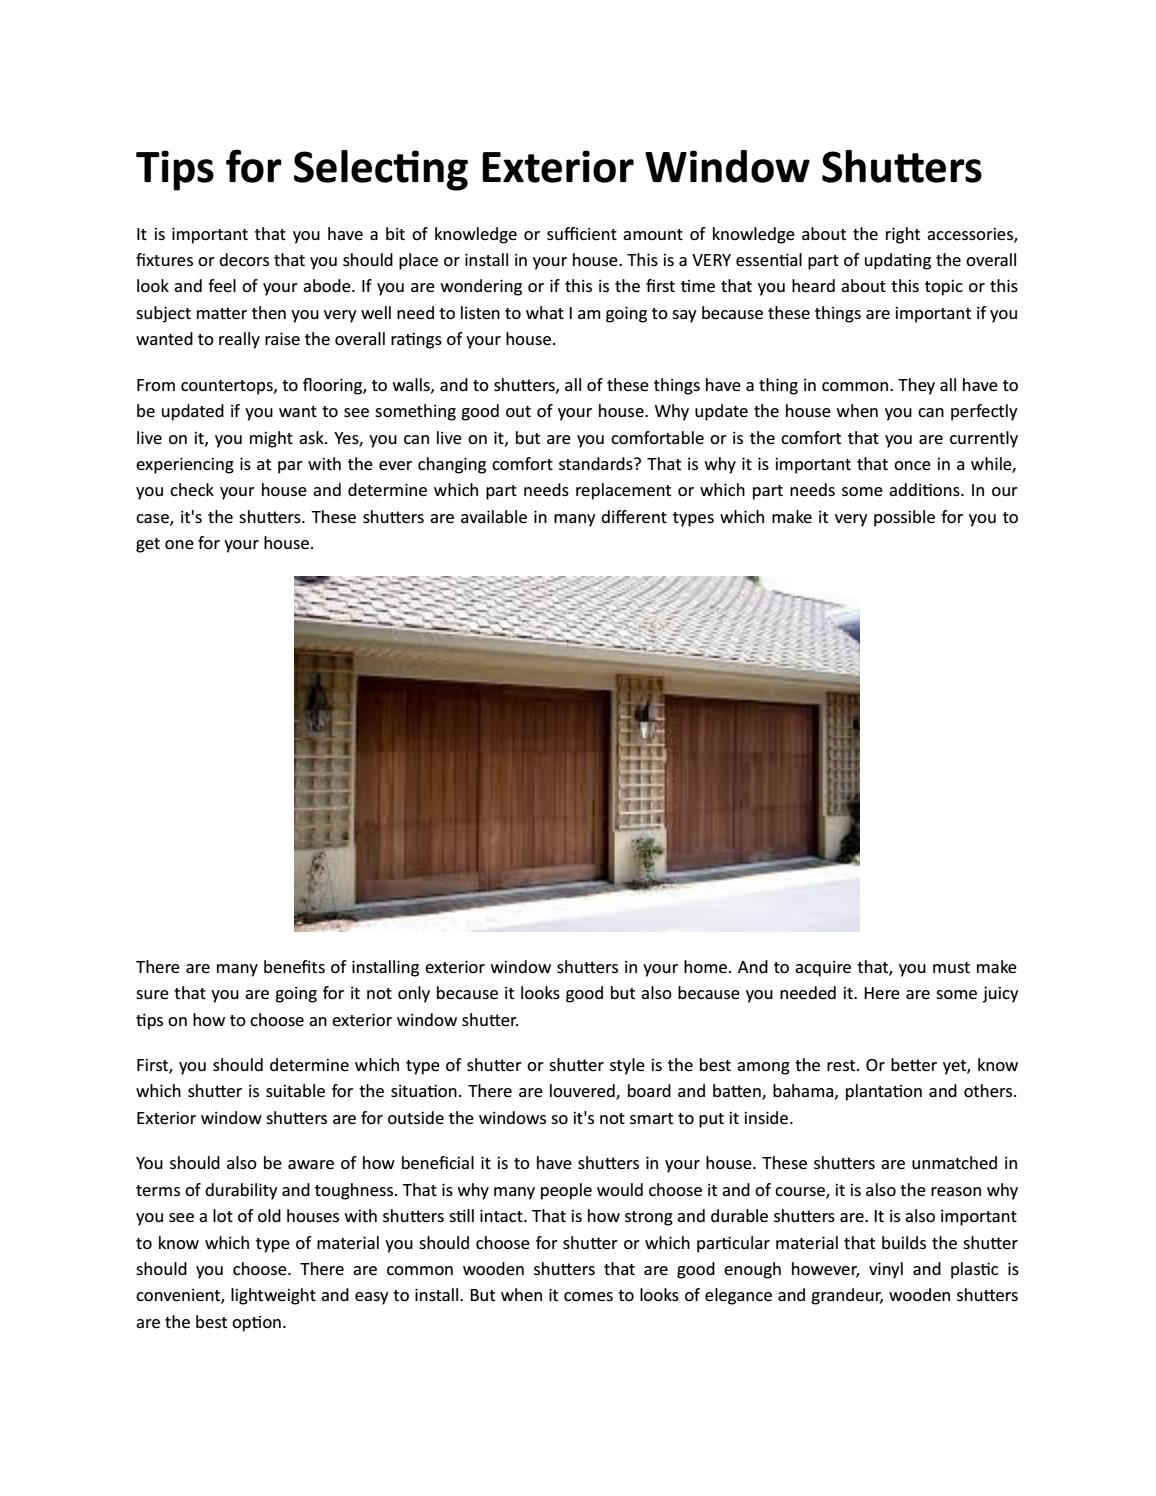 Tips For Selecting Exterior Window Shutters By Shuttercraft